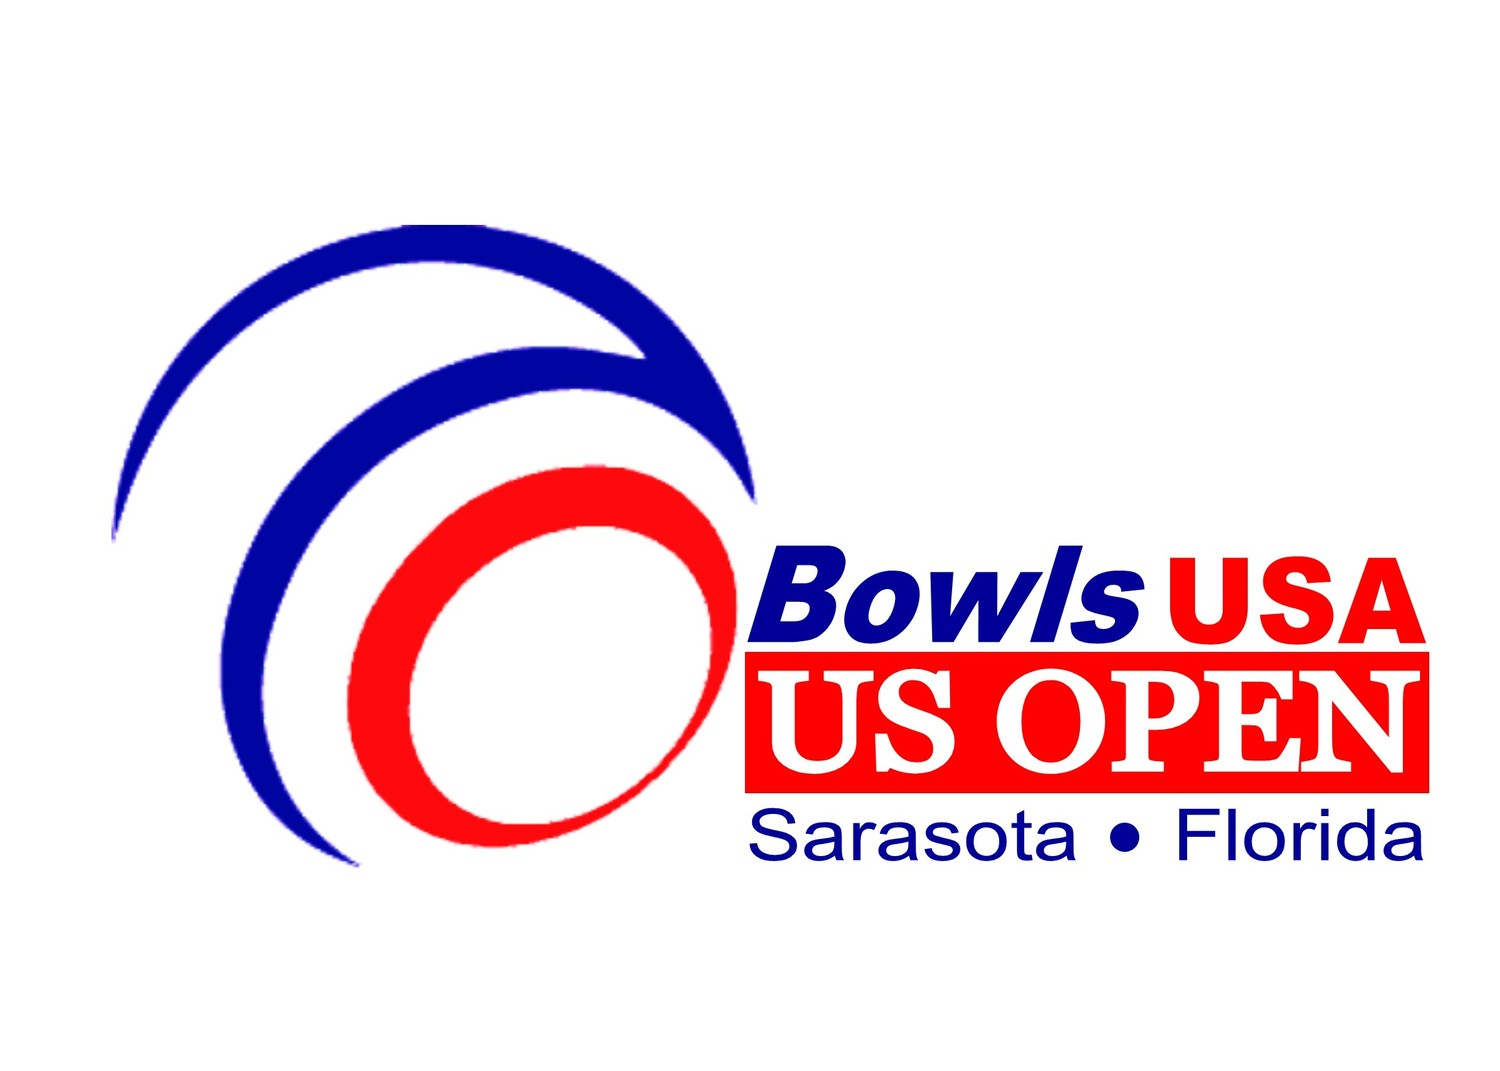 Bowls USA US Open